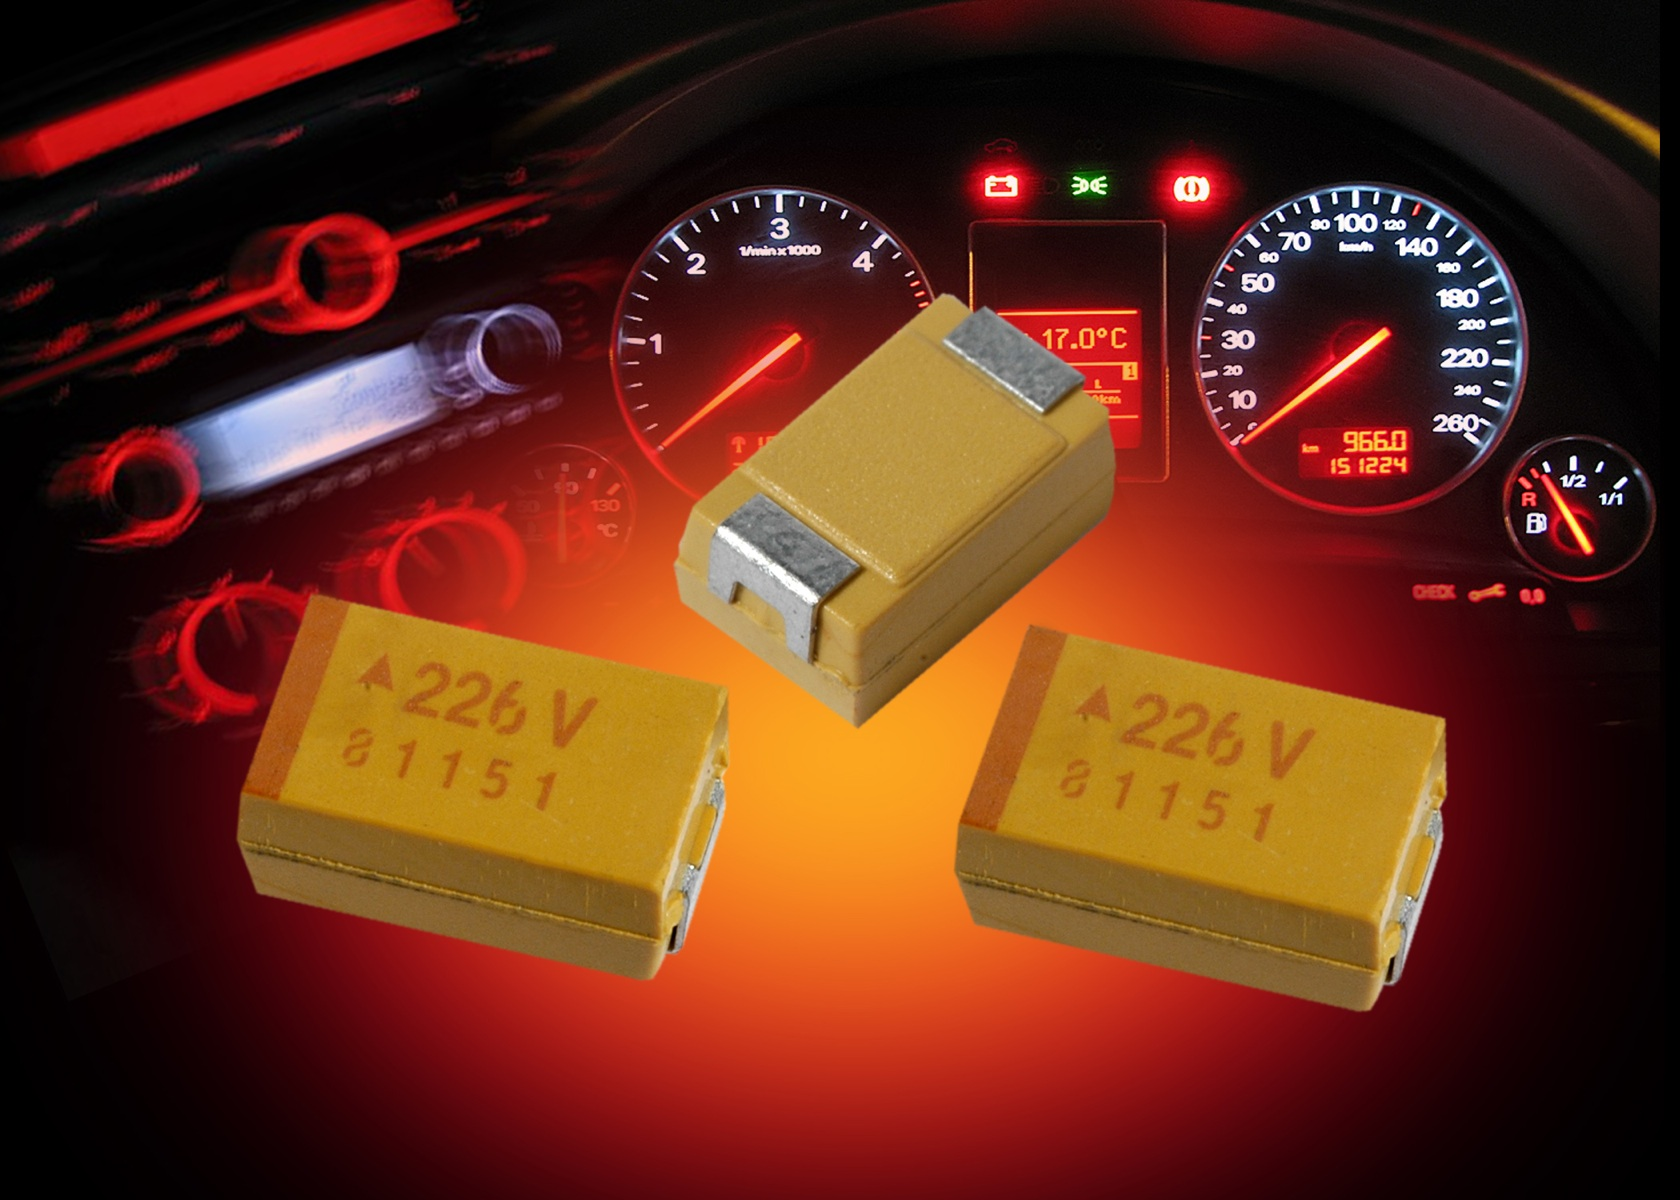 AVX Expands Robust, Commercial-Grade SMD Tantalum Capacitor Series for Long-Life Applications